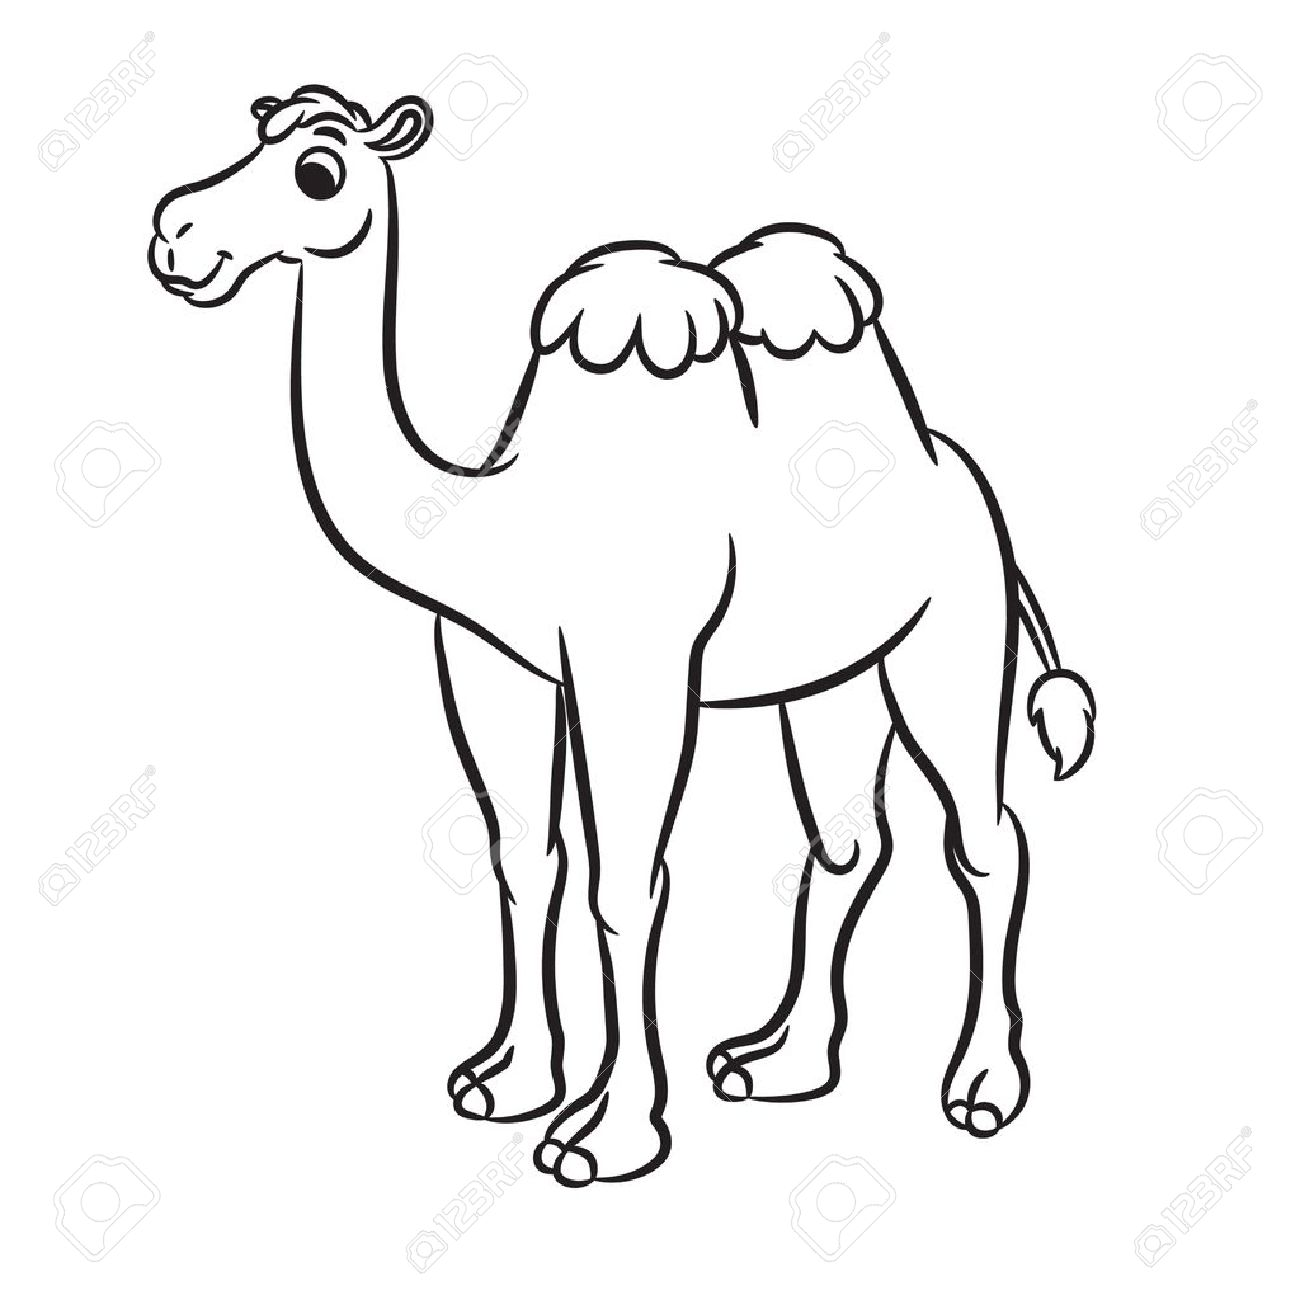 Camel Clipart Black And White, Camel Black And White